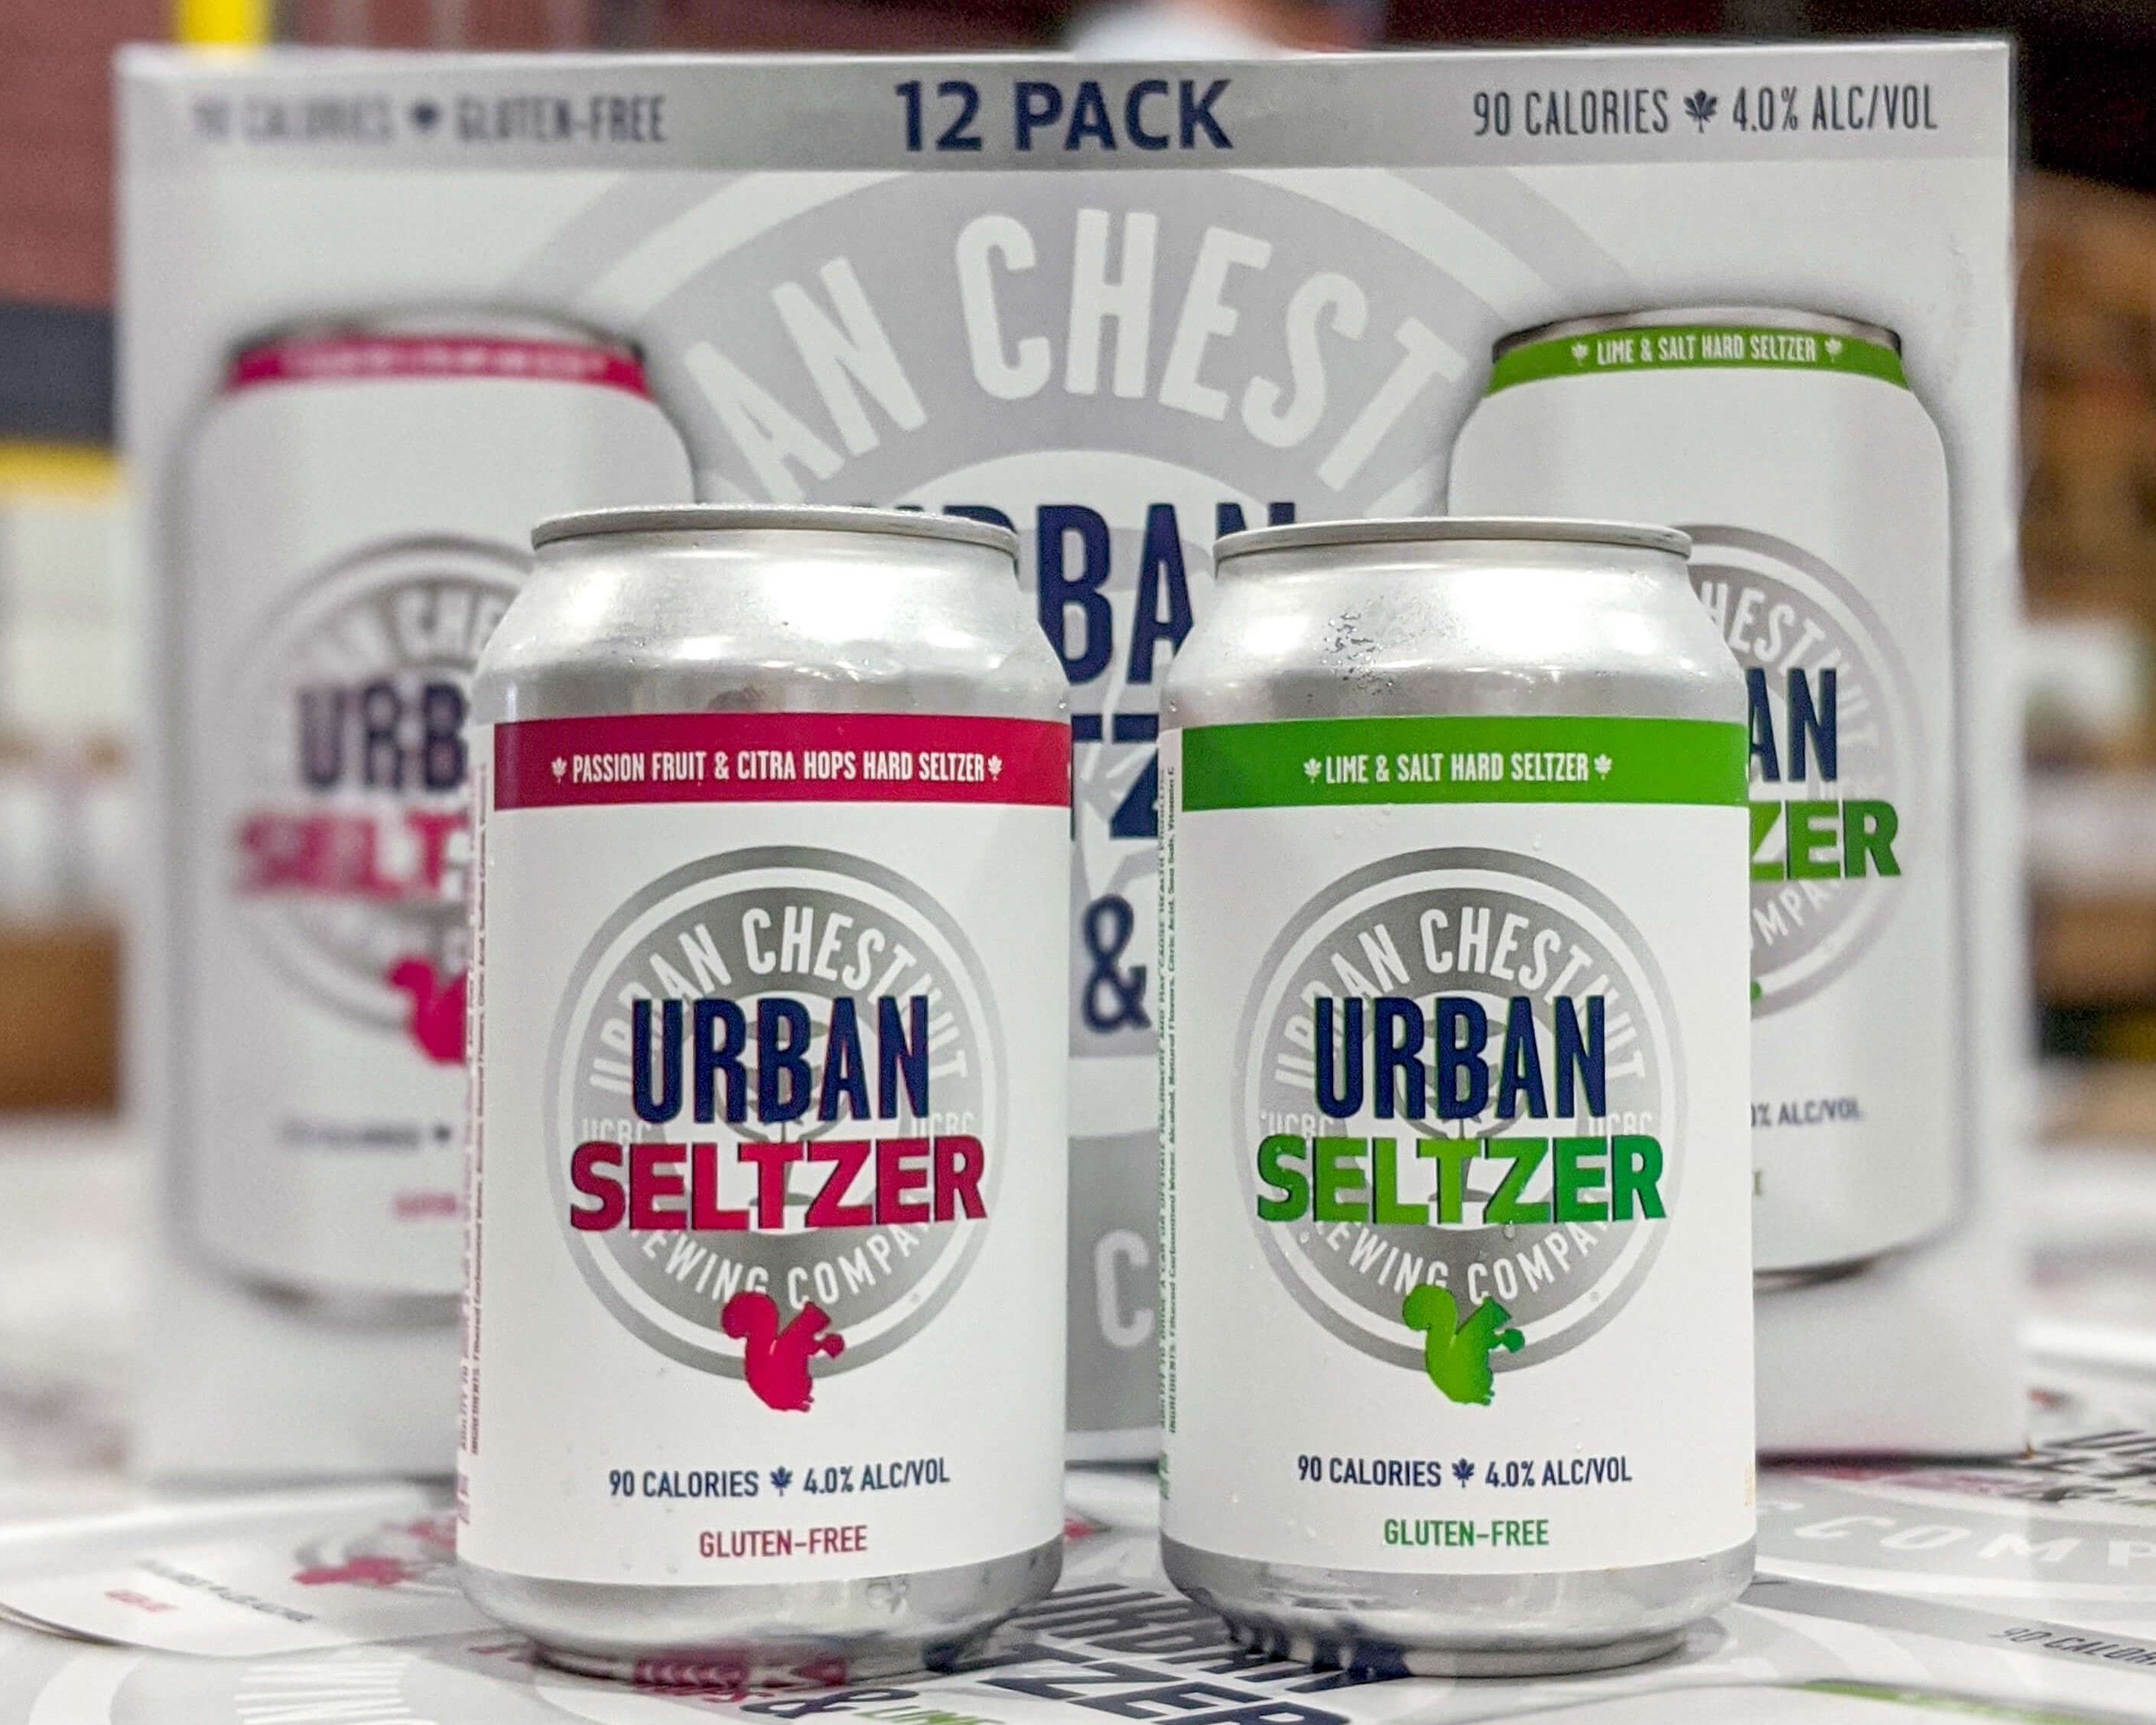 Urban Chestnut's first Hard Seltzer is now in stores: Urban Seltzer is available in two unique flavors